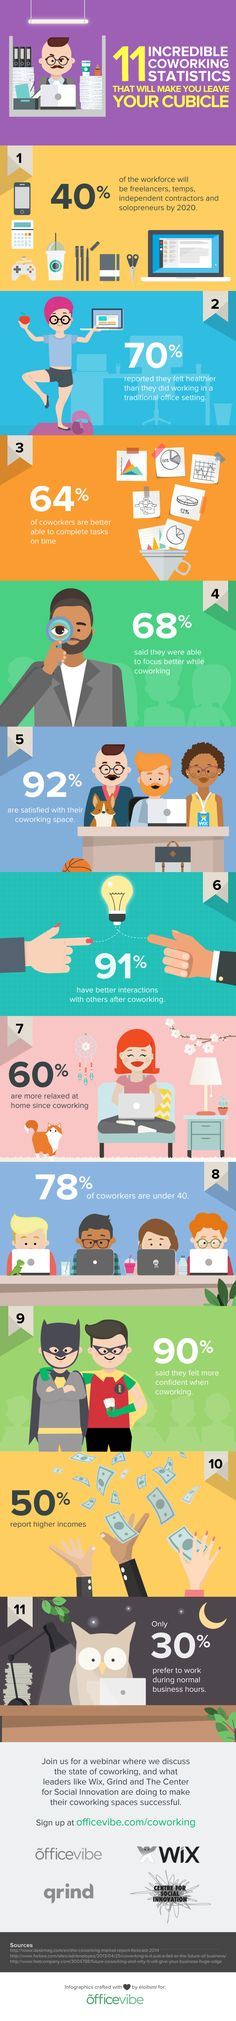 11 Incredible Coworking Statistics That Will Make You Leave Your Cubicle